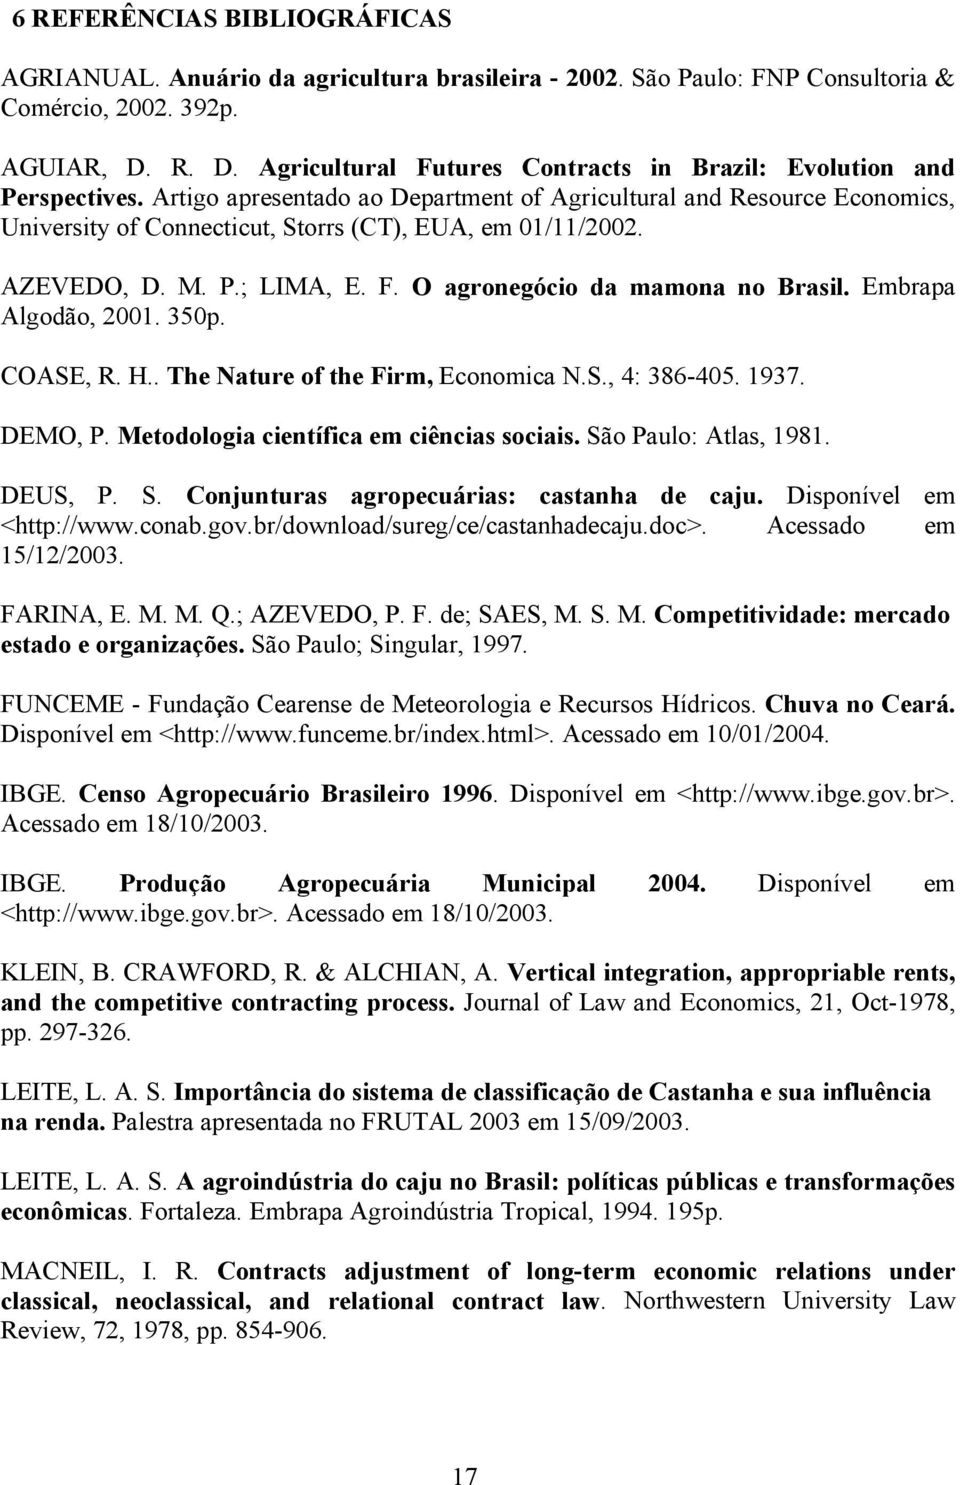 Artigo apresentado ao Department of Agricultural and Resource Economics, University of Connecticut, Storrs (CT), EUA, em 01/11/2002. AZEVEDO, D. M. P.; LIMA, E. F. O agronegócio da mamona no Brasil.